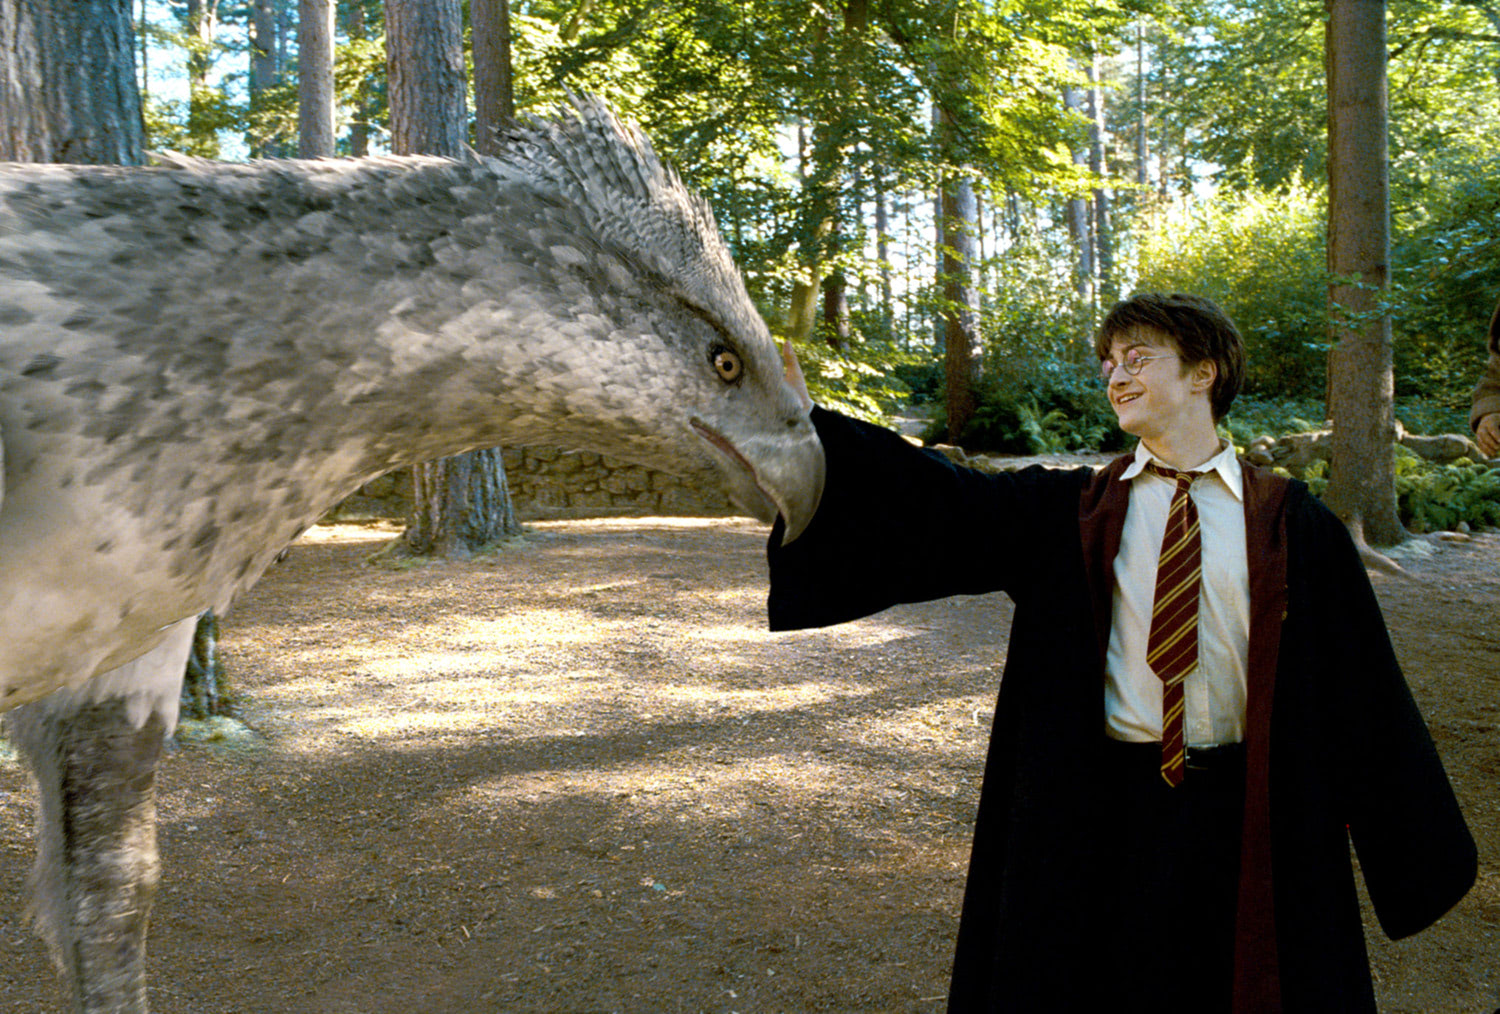 Harry touches Buckbeak